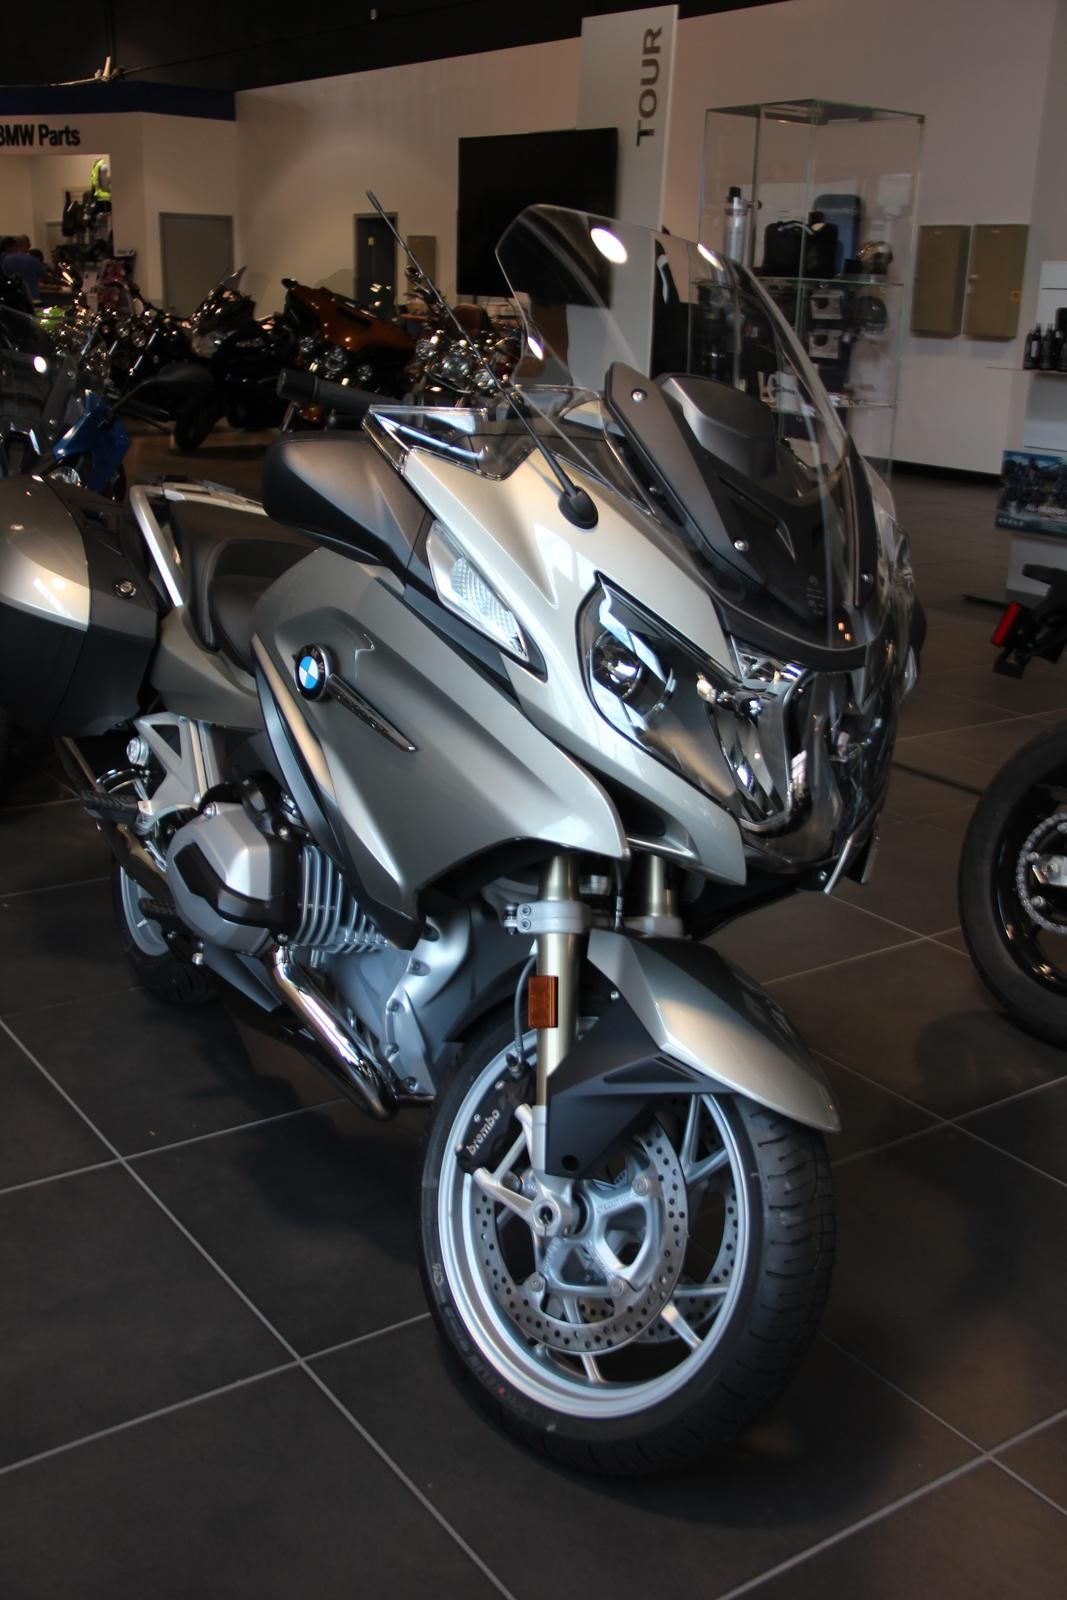 2016 Bmw R1200rt For Sale In Dulles Va Motorcycles Of Dulles 855